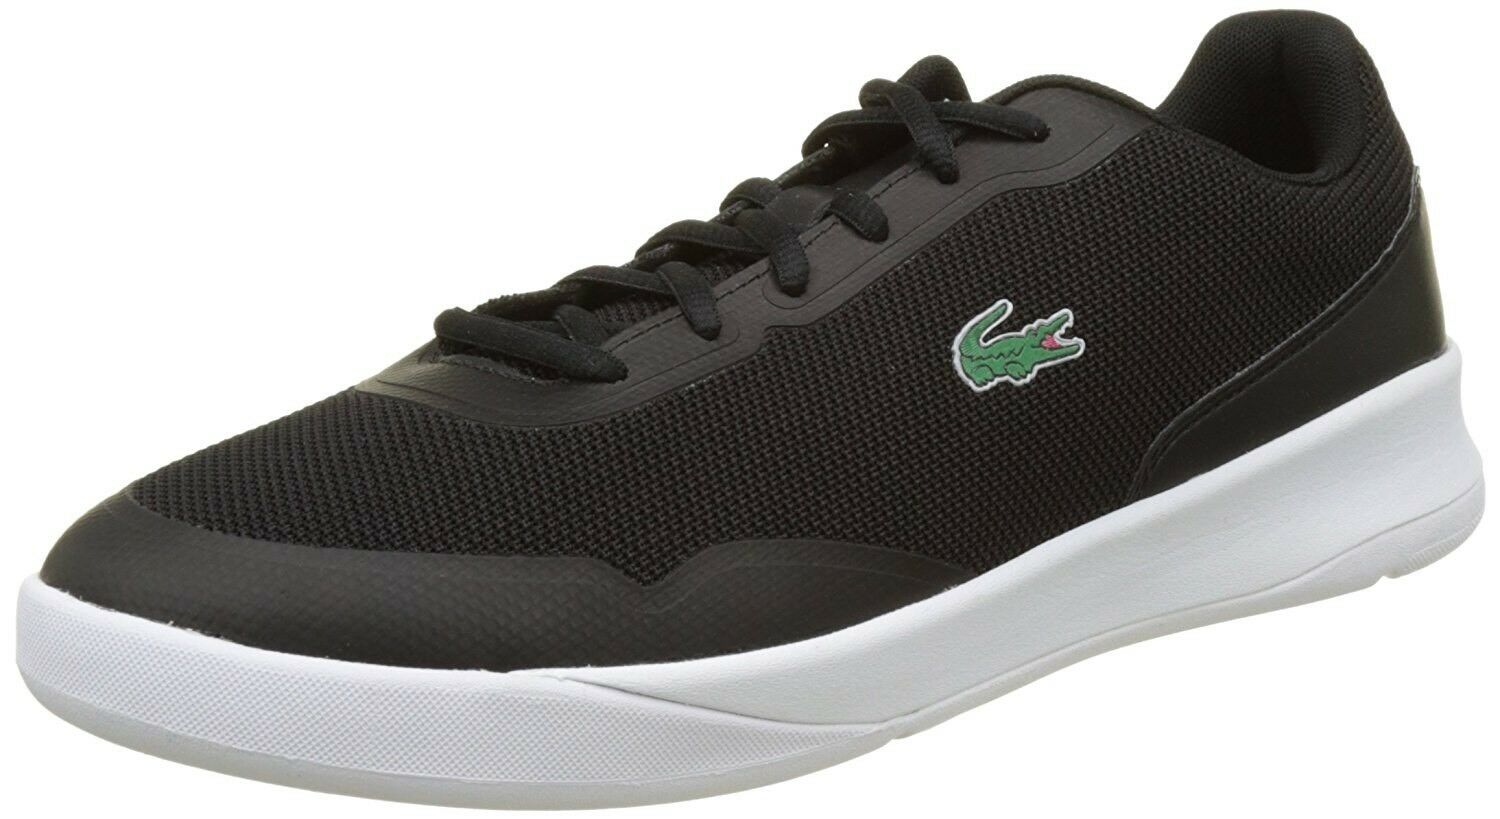 New In Box  Lacoste LT Spirit 117 1 Black Sneakers- Men's Size 11.5